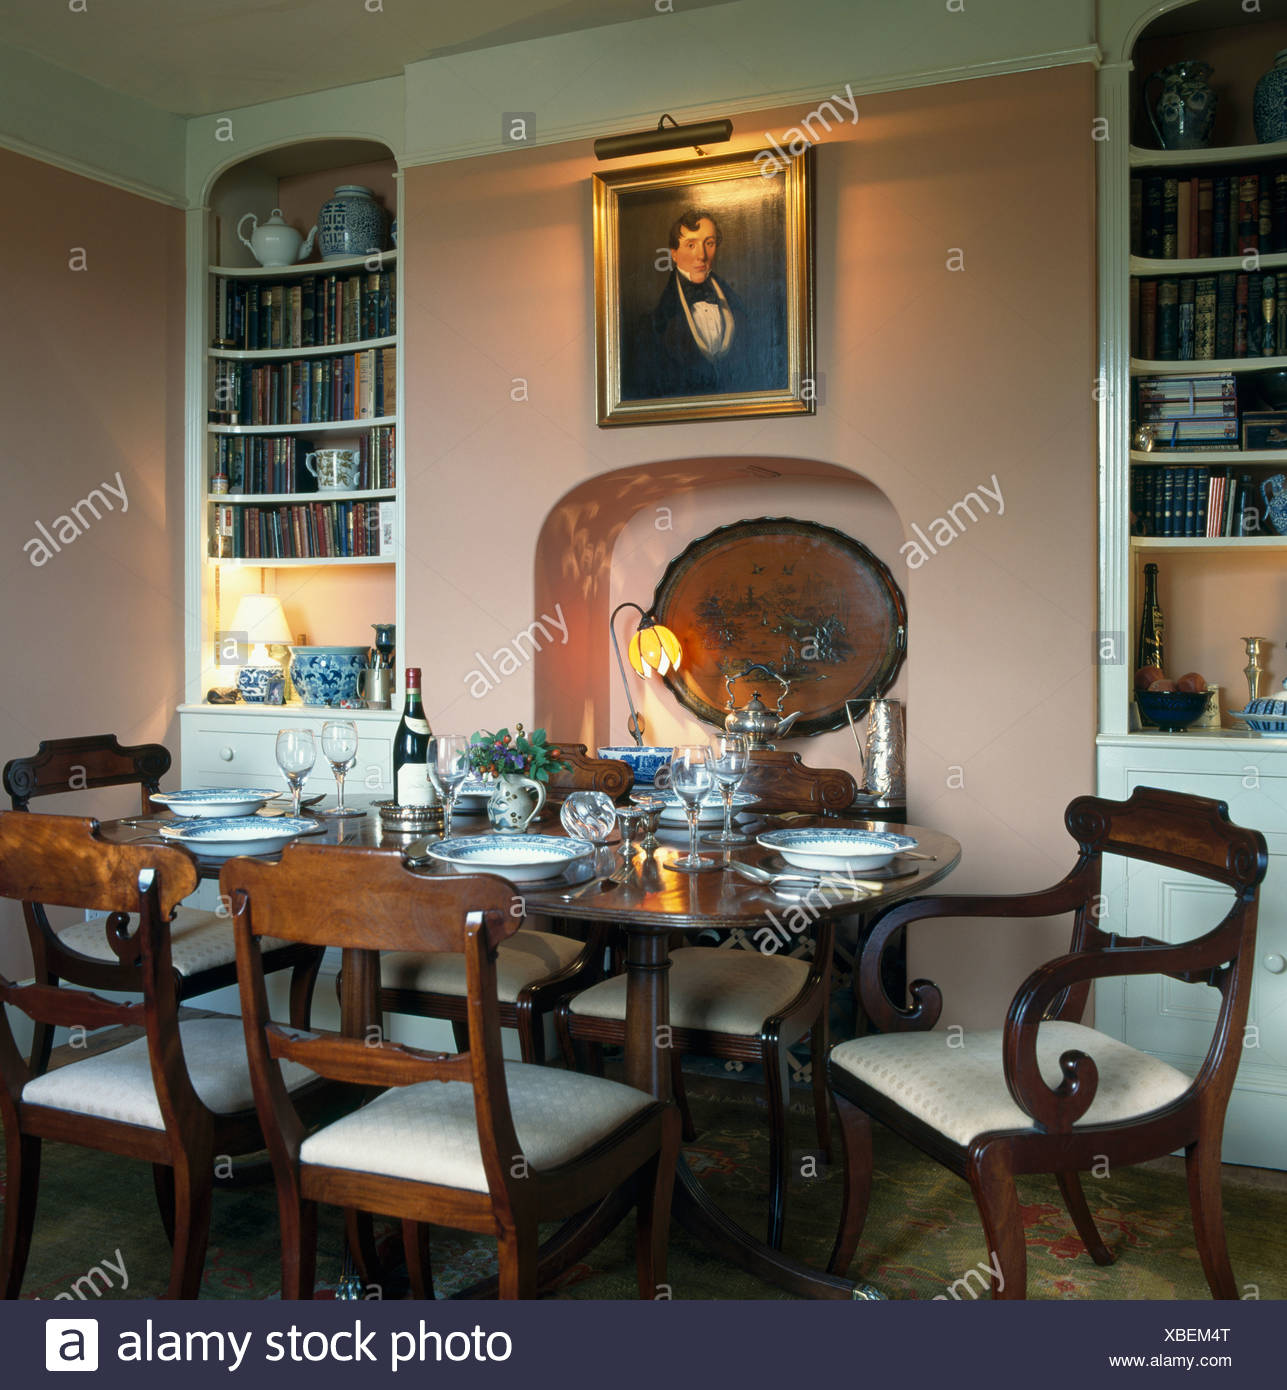 Beautiful Alcove Bookshelves In Pink Dining Room With Antique Furniture And Picture  Above Fireplace Alcove